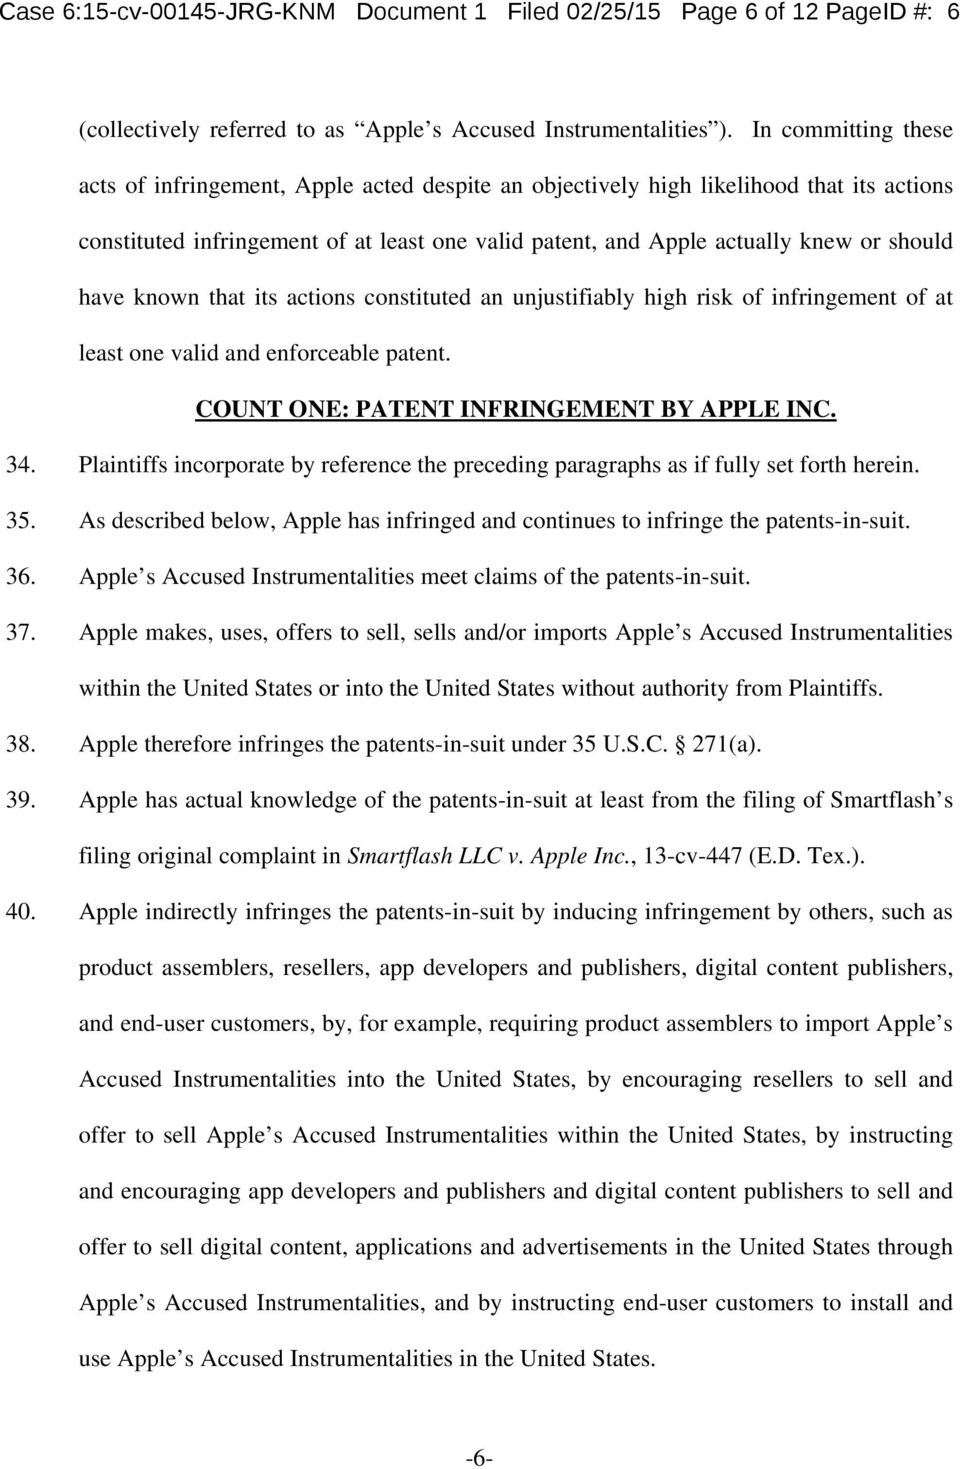 have known that its actions constituted an unjustifiably high risk of infringement of at least one valid and enforceable patent. COUNT ONE: PATENT INFRINGEMENT BY APPLE INC. 34.